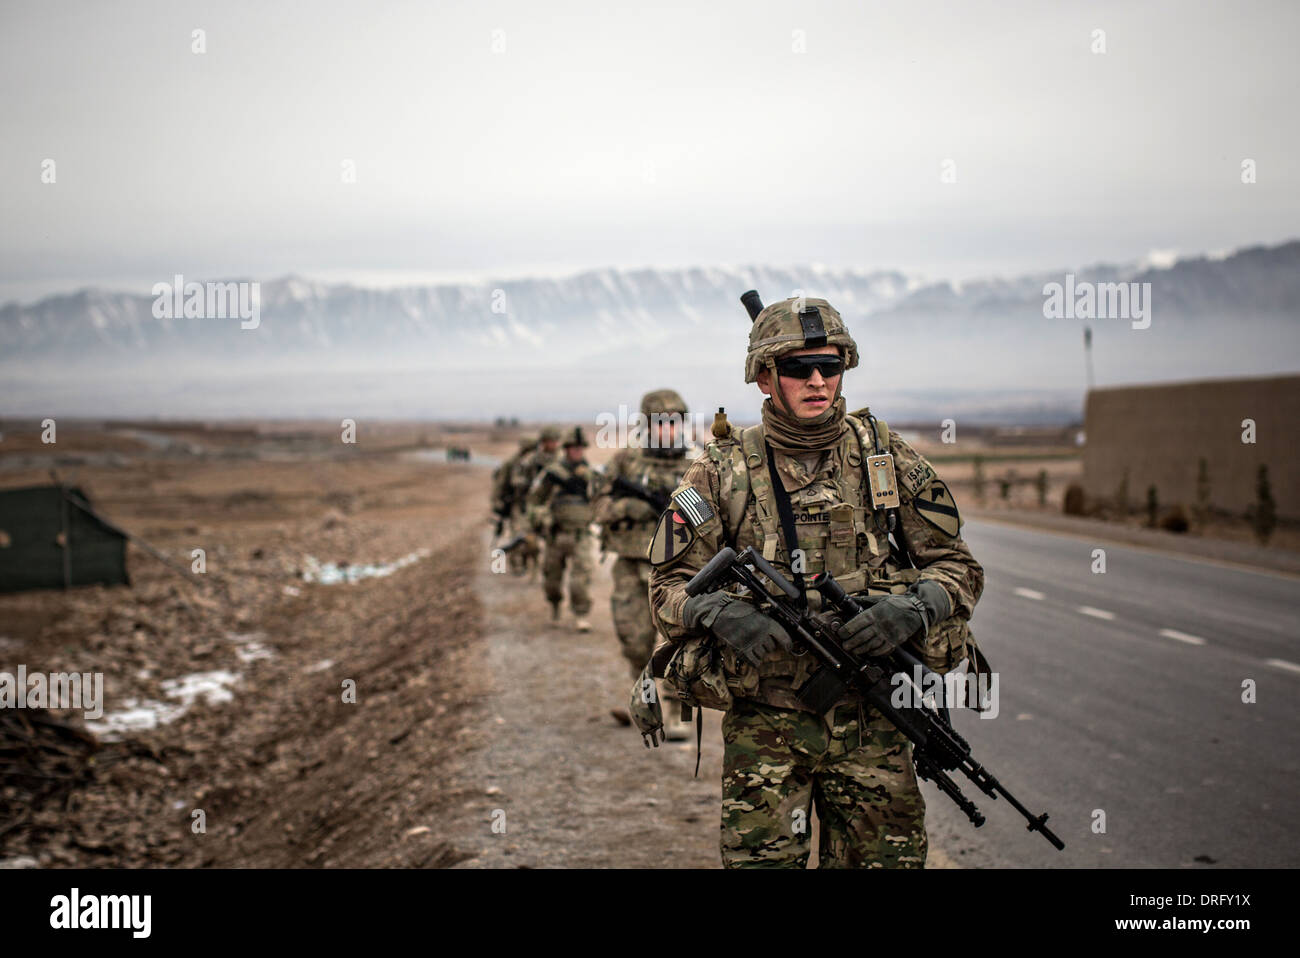 US Army soldiers with the 1st Cavalry Division conduct a patrol January 12, 2014 in Tirin Kot, Uruzgan province, Stock Photo